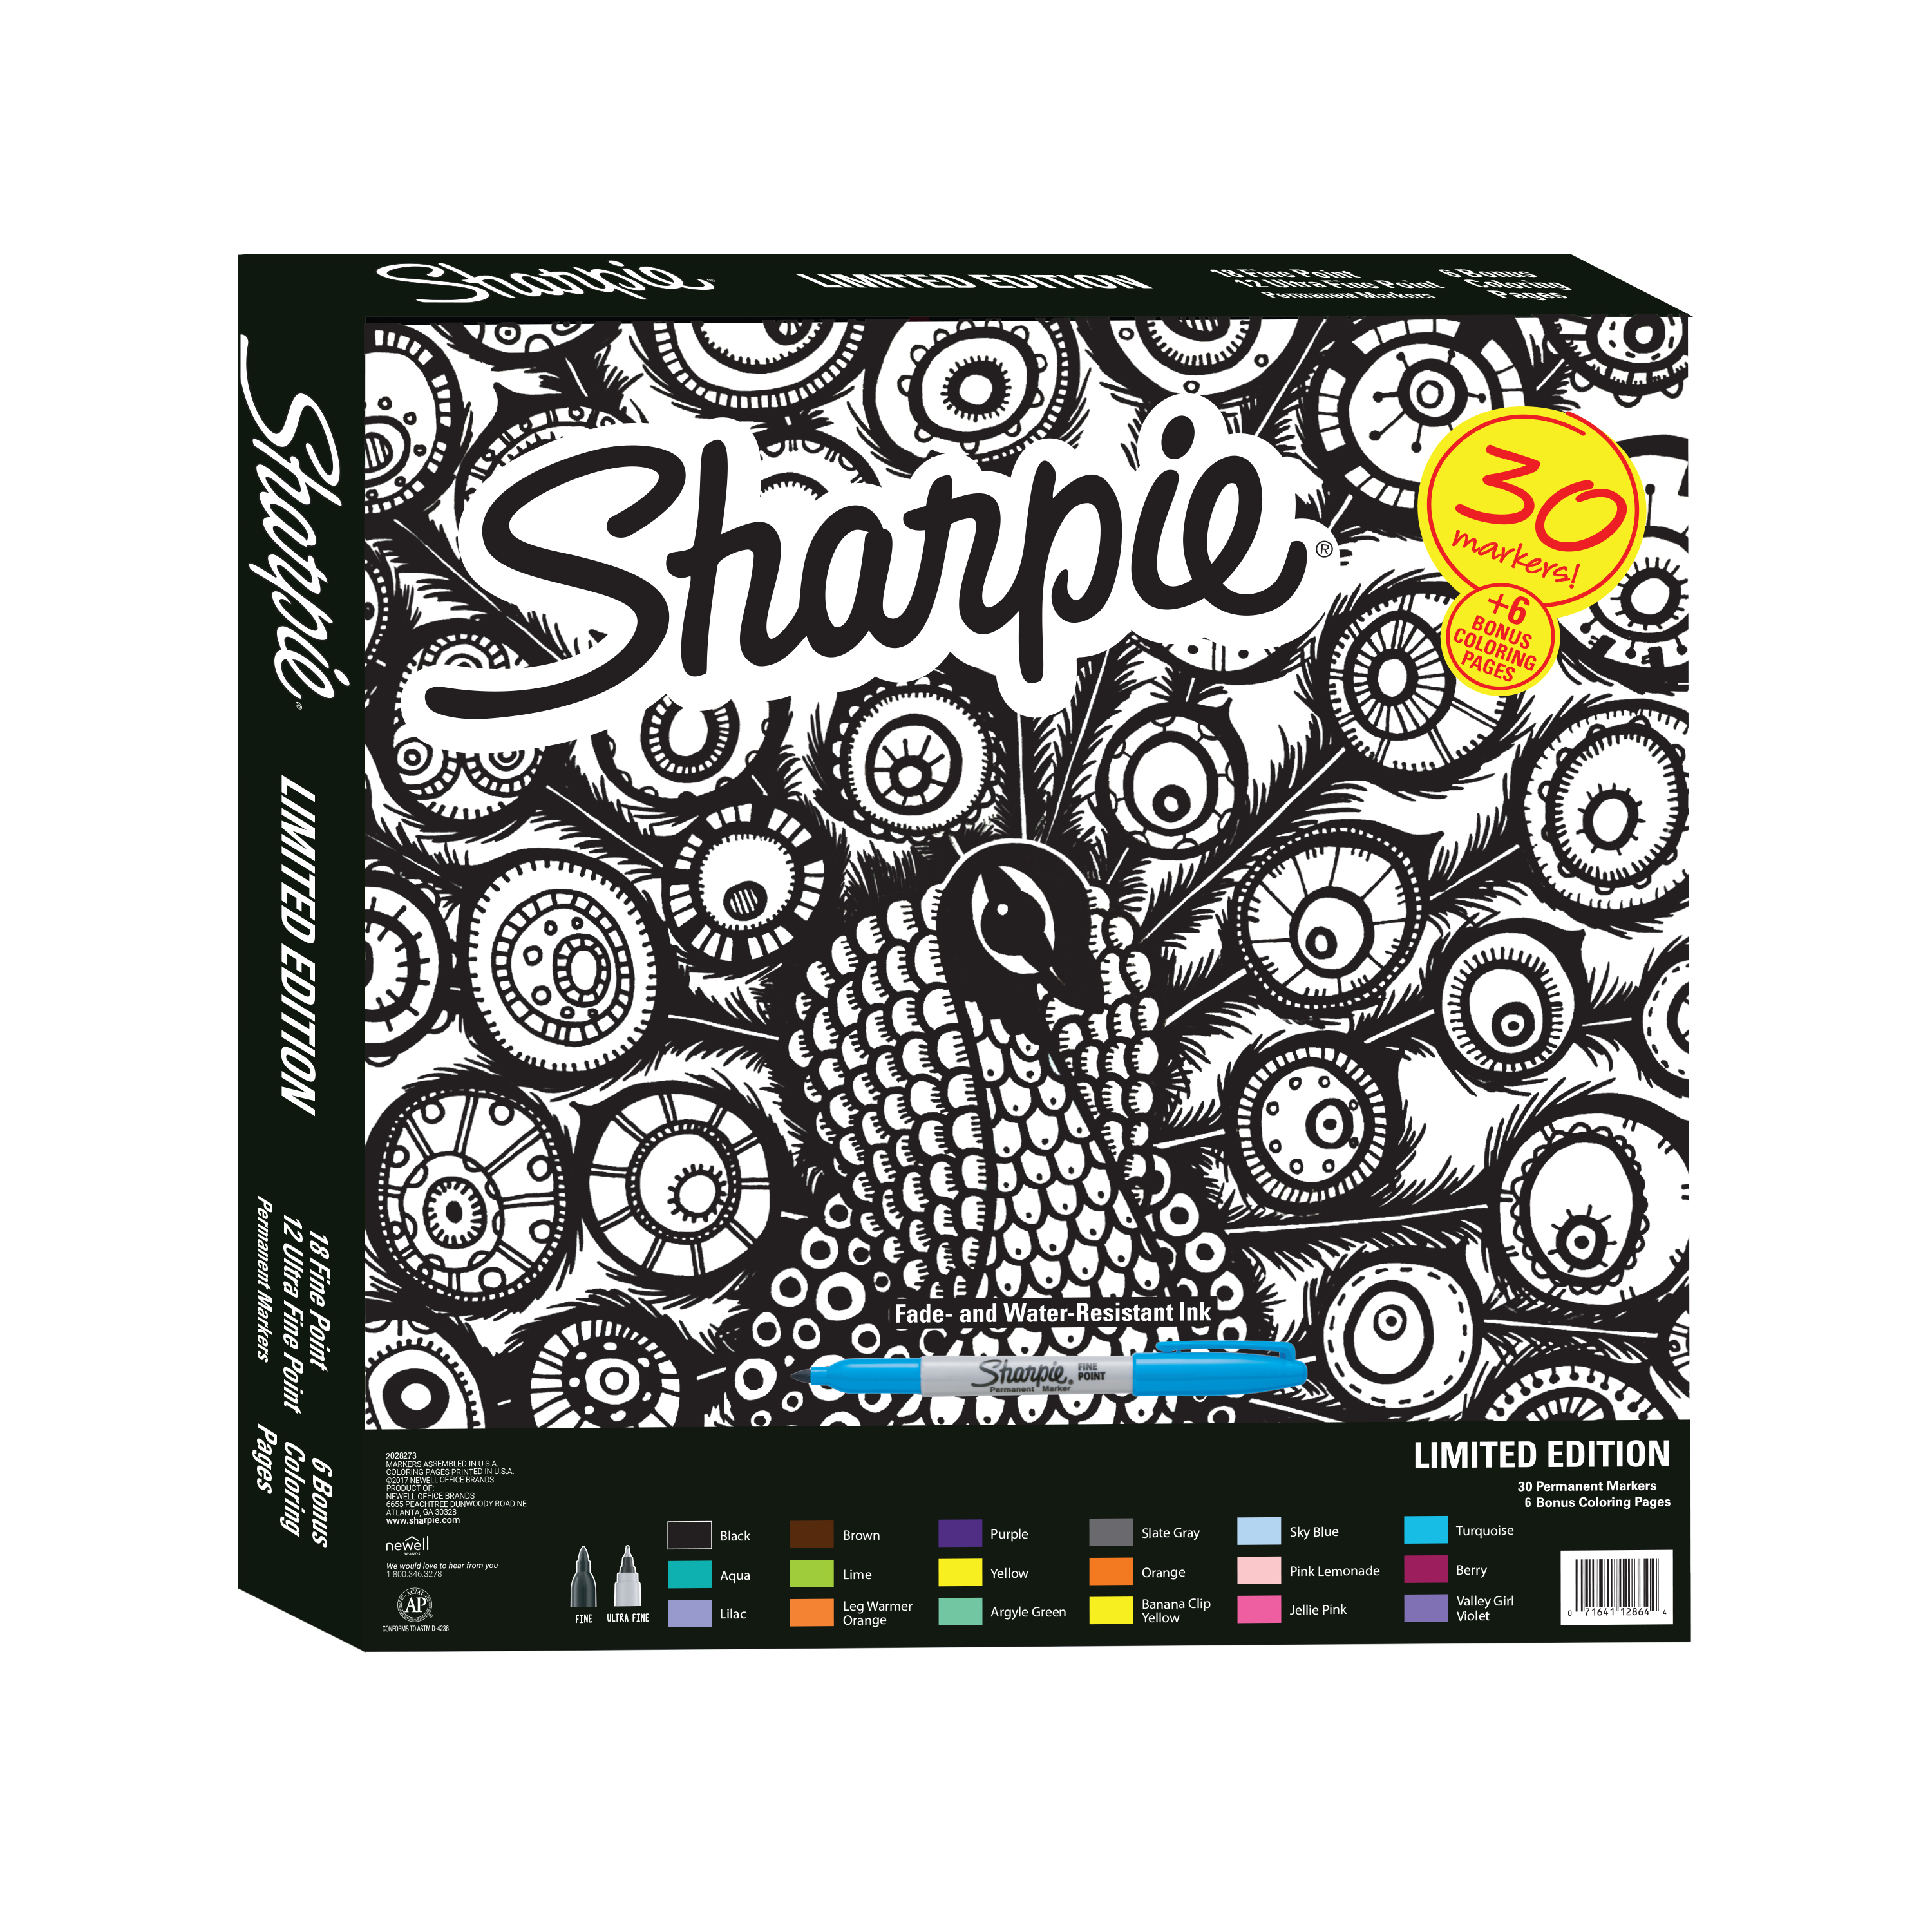 Coloring Christmas Lights With Sharpie Permanent Marker Limited Edition Set Exclusive Color